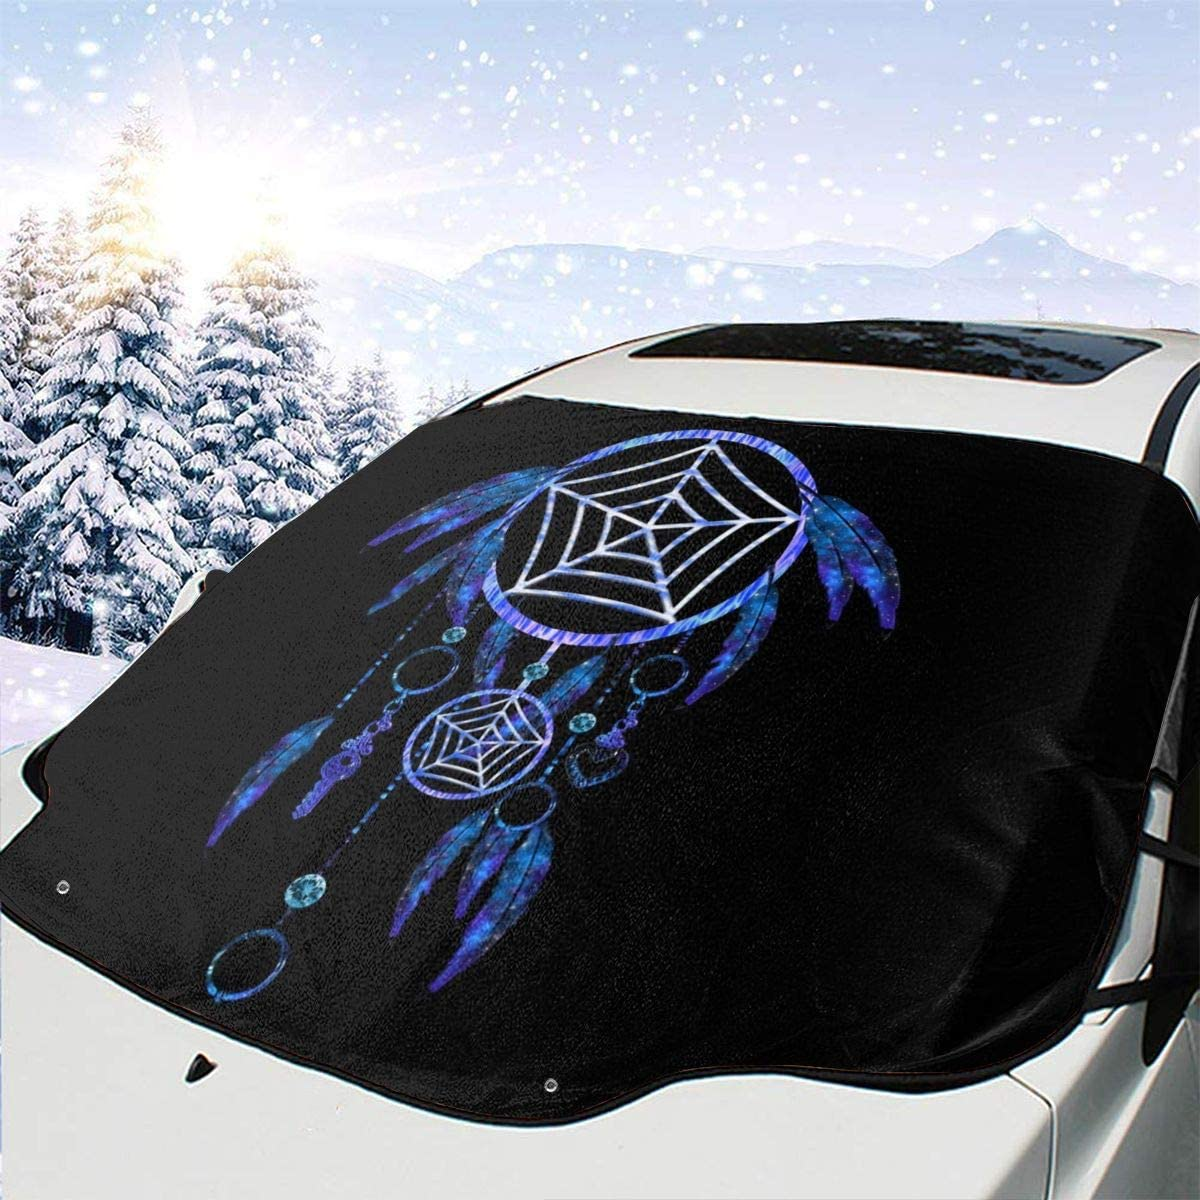 CheChenDengH Sweetest Dream Catcher Car Windshield Snow Cover Shade with Magnetic Edges Blocks UV Rays Reflector for Extra Large Windshield Cover Fits All Season and Most Cars